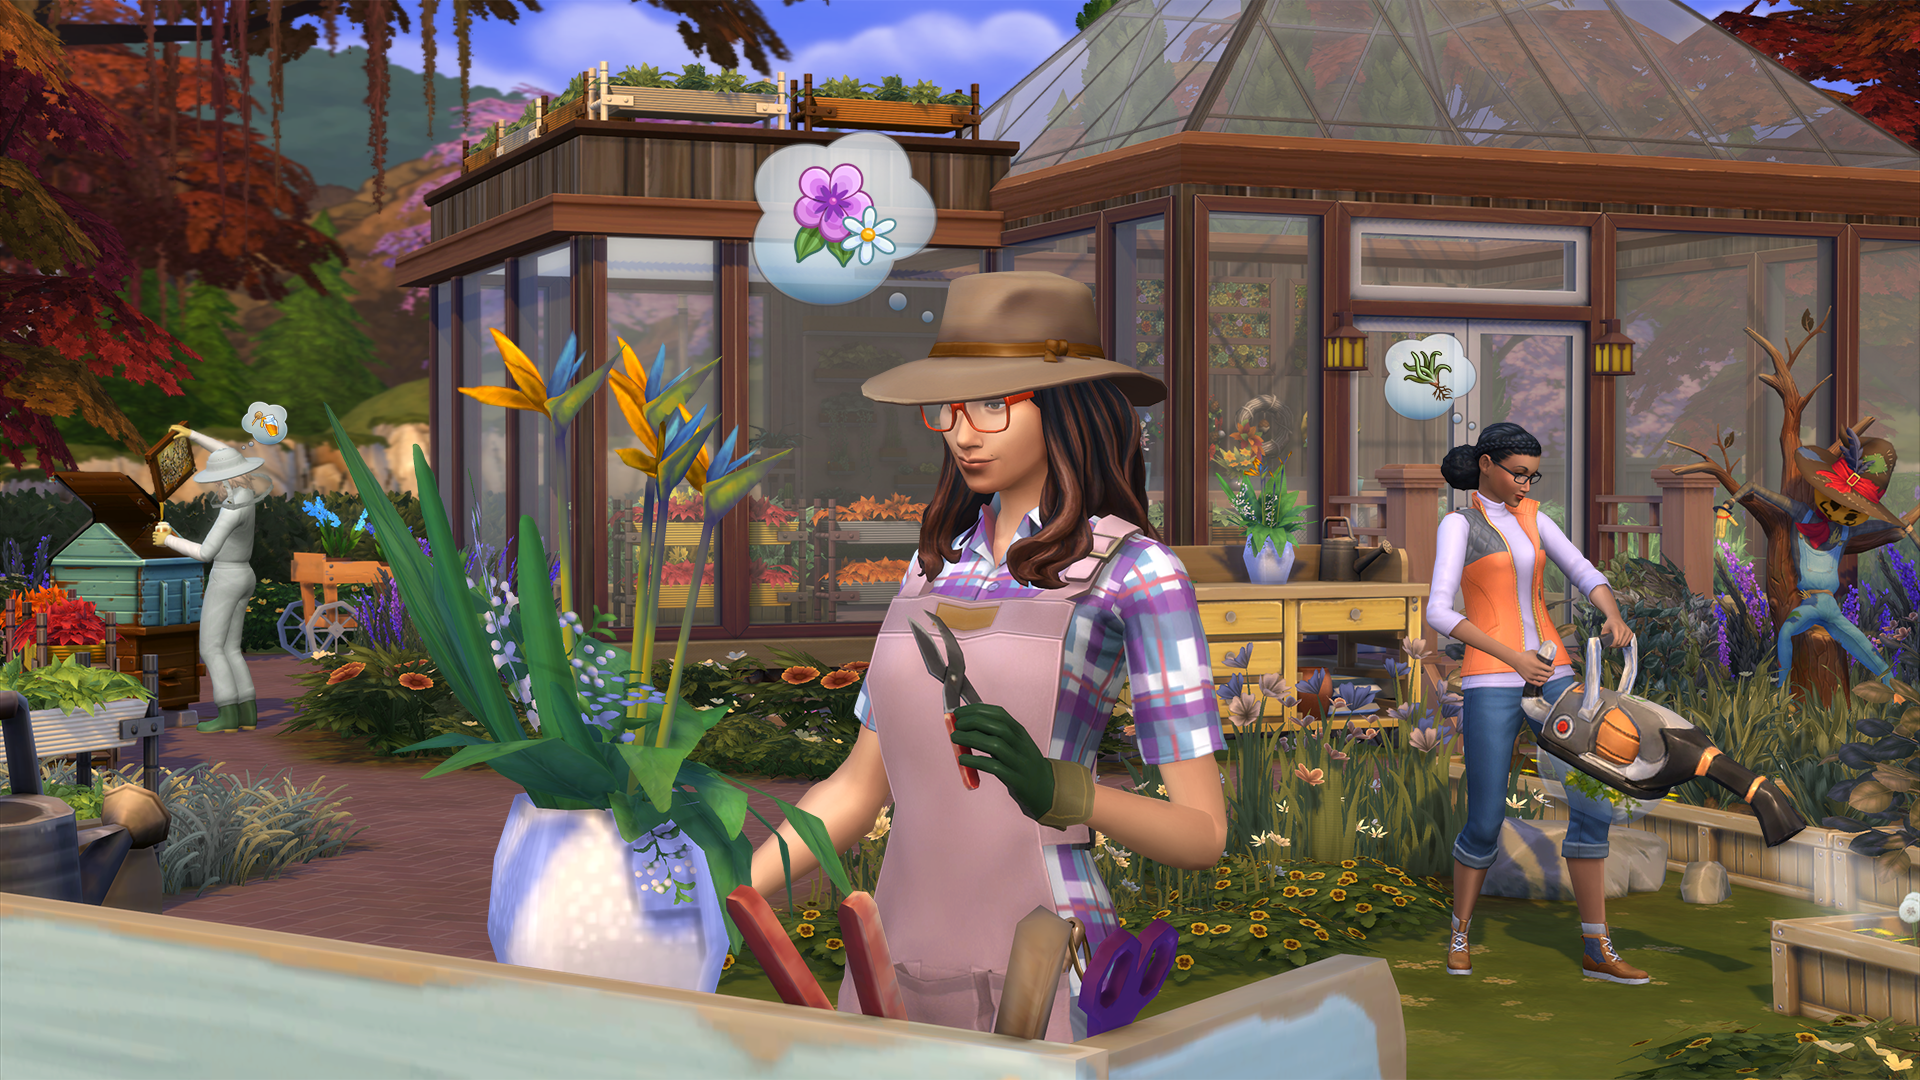 TS4_0345_EP05_OFFICIAL_SCREENS_04_003_1080